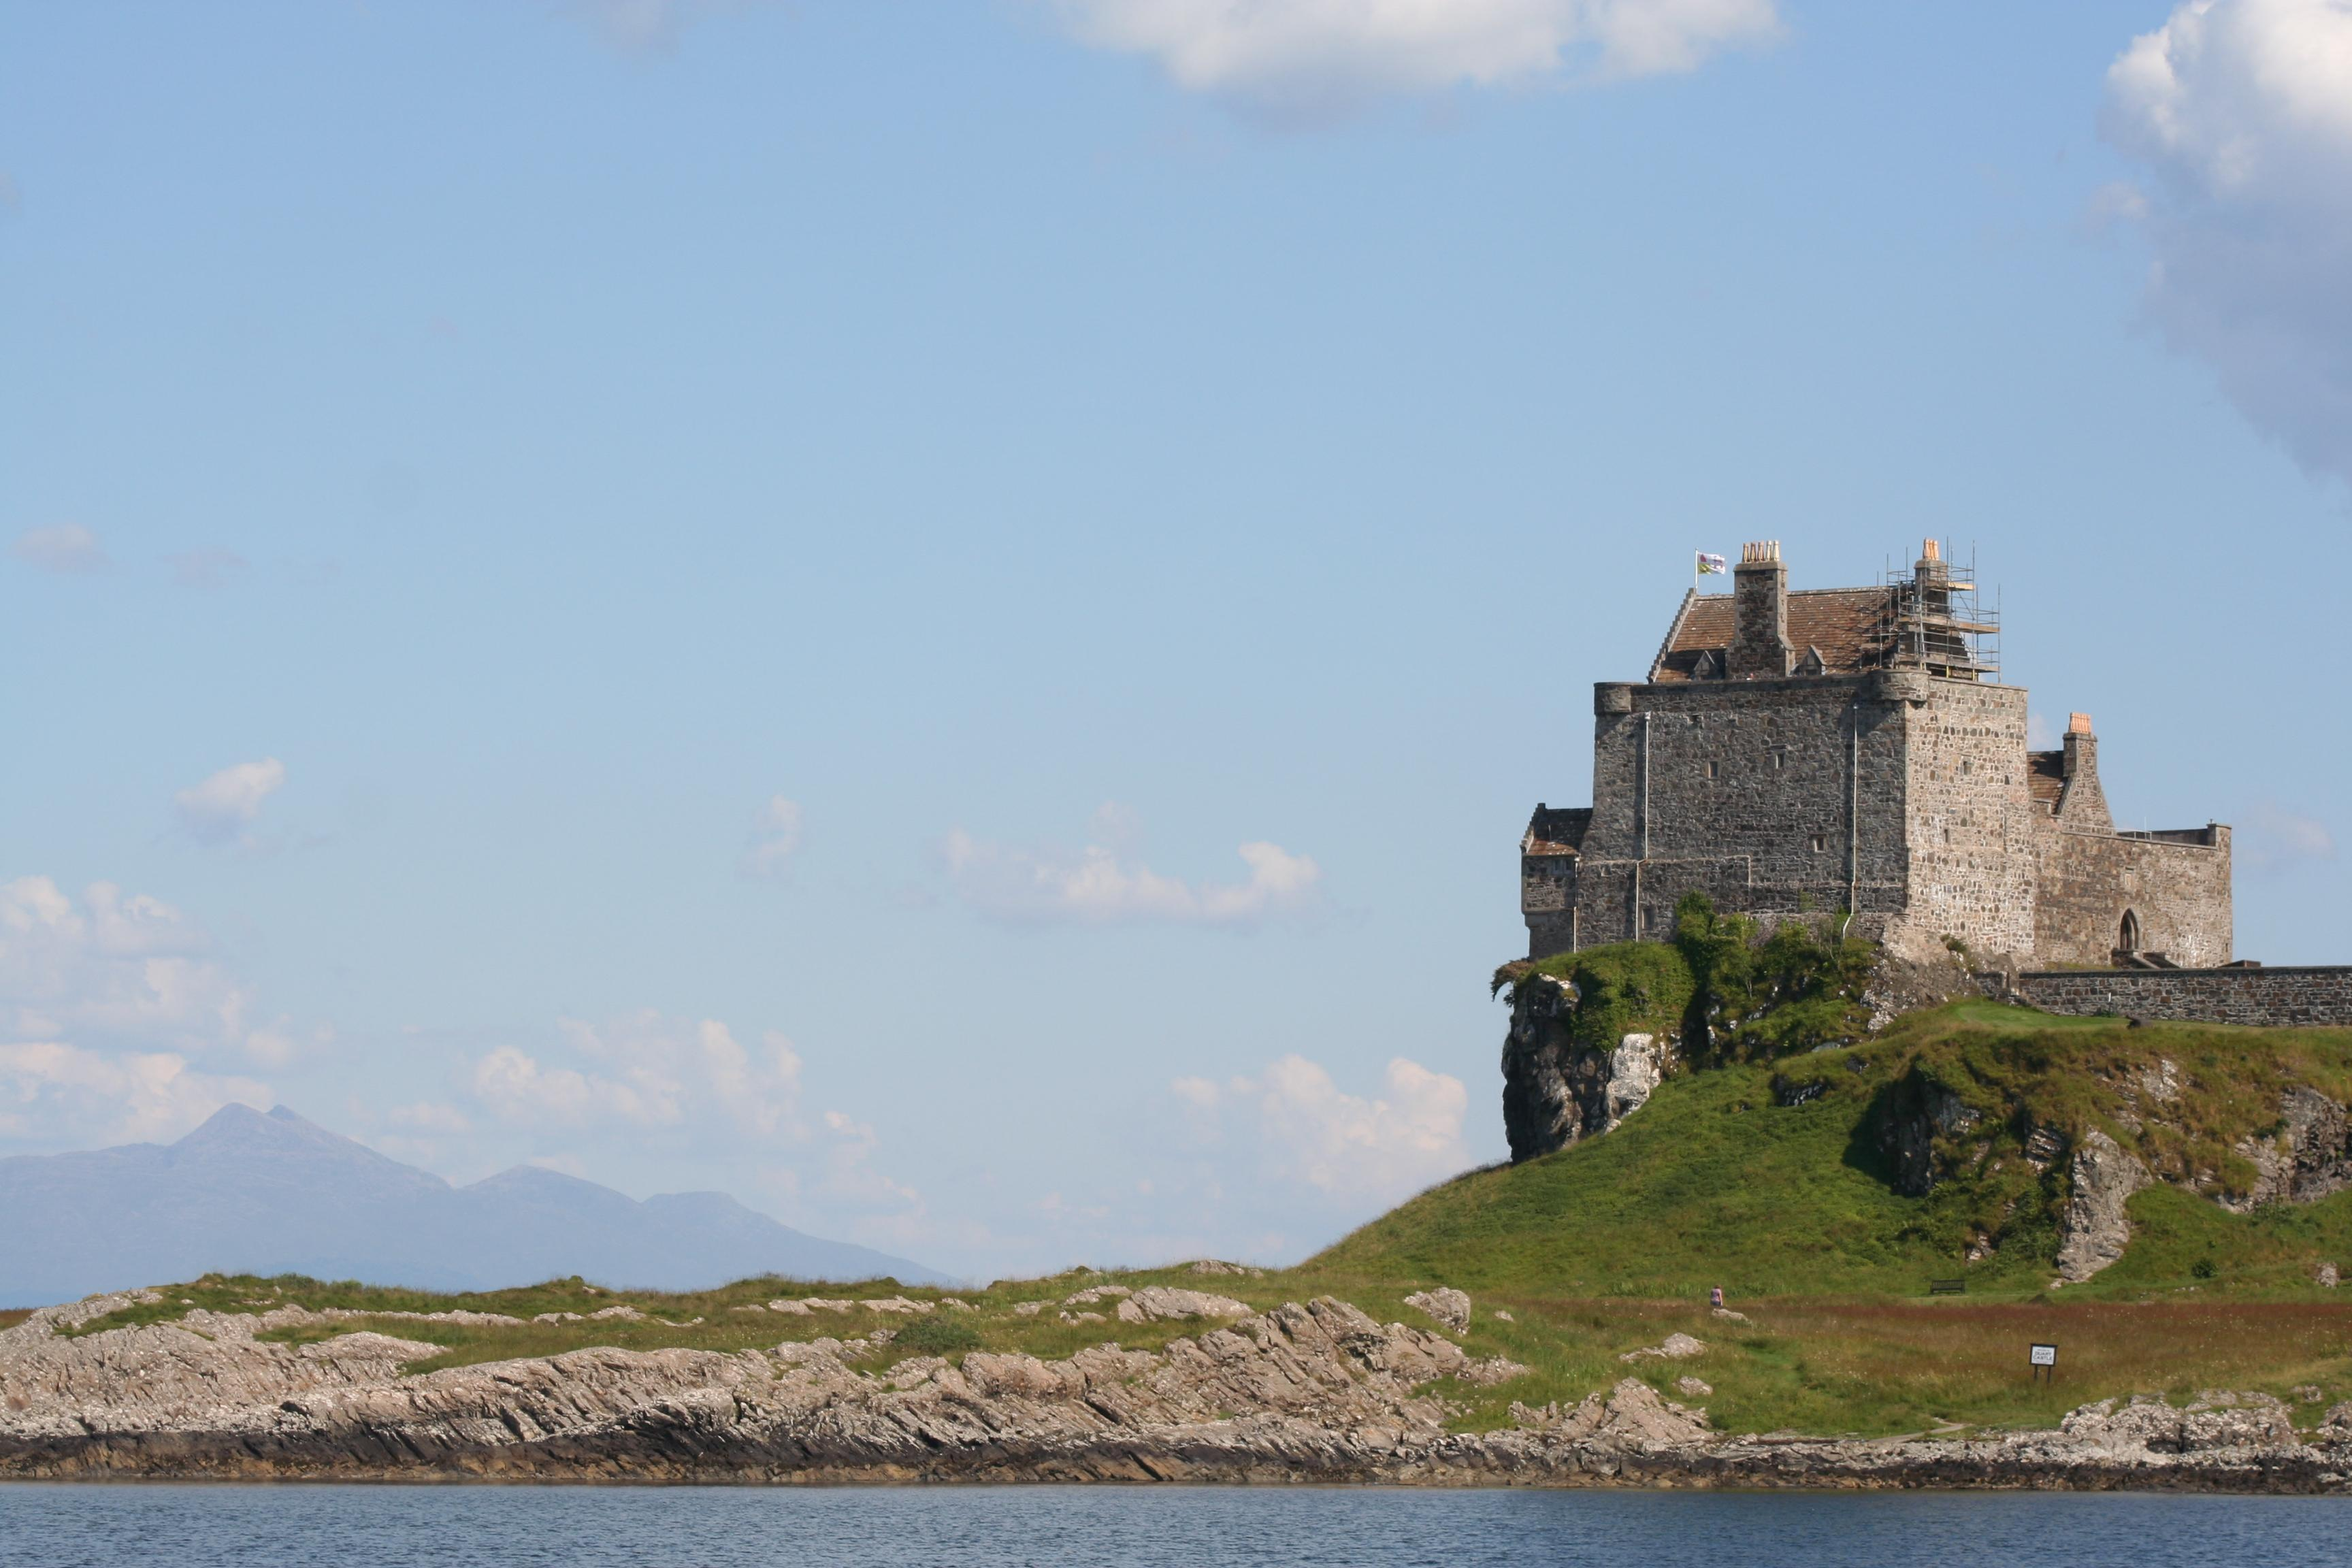 Castle Duart from Cal Mac ferry en route between Mull and Oban